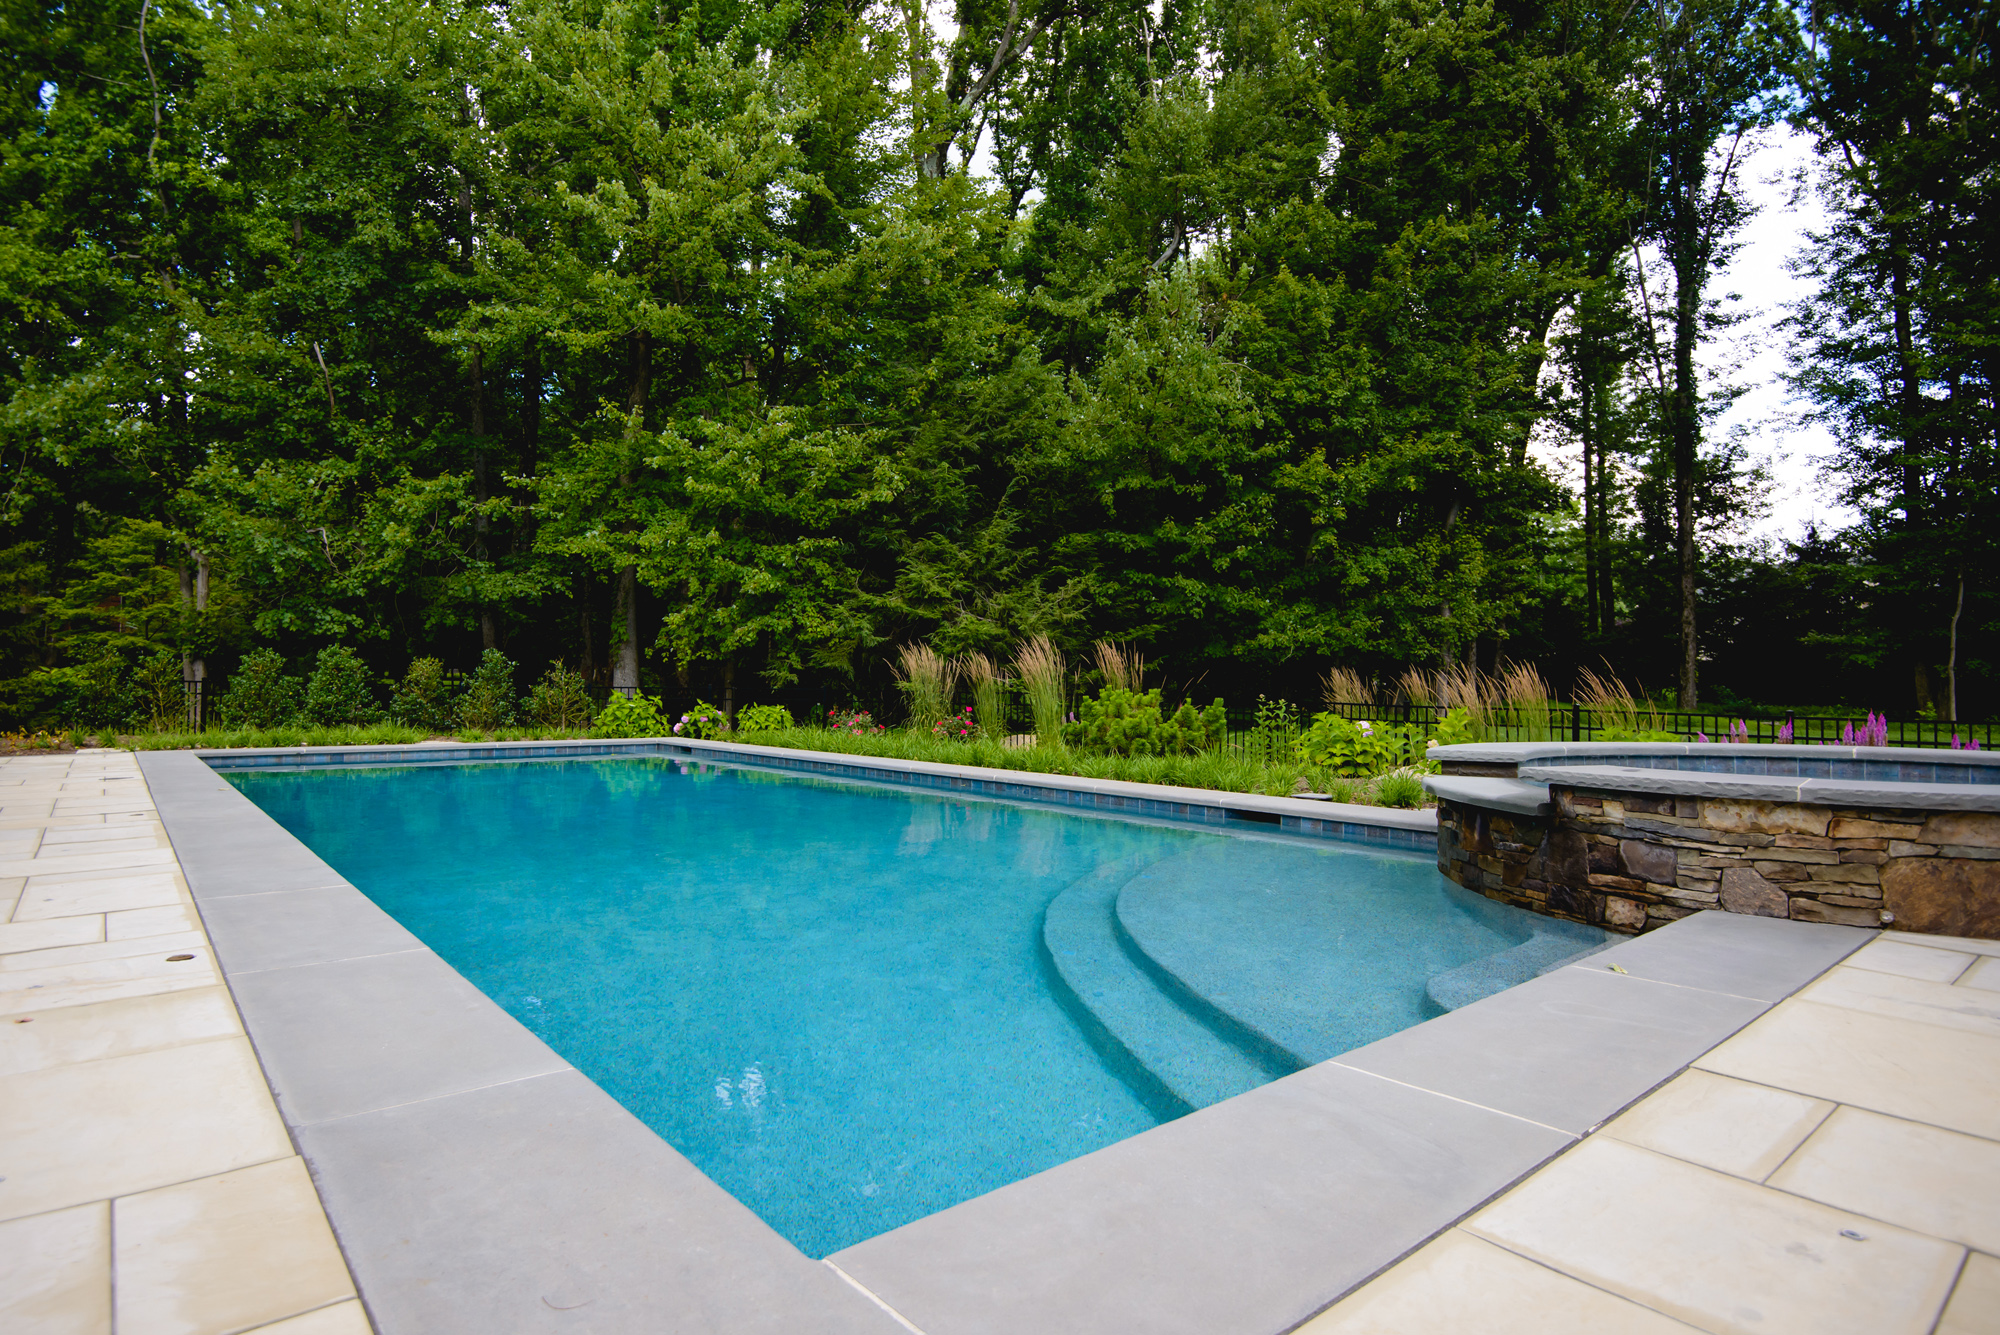 The Landscape And Placement Around The Swimming Pool And Spa Provide An  Intimate And Private Setting, A True Escape Within The Backyard.